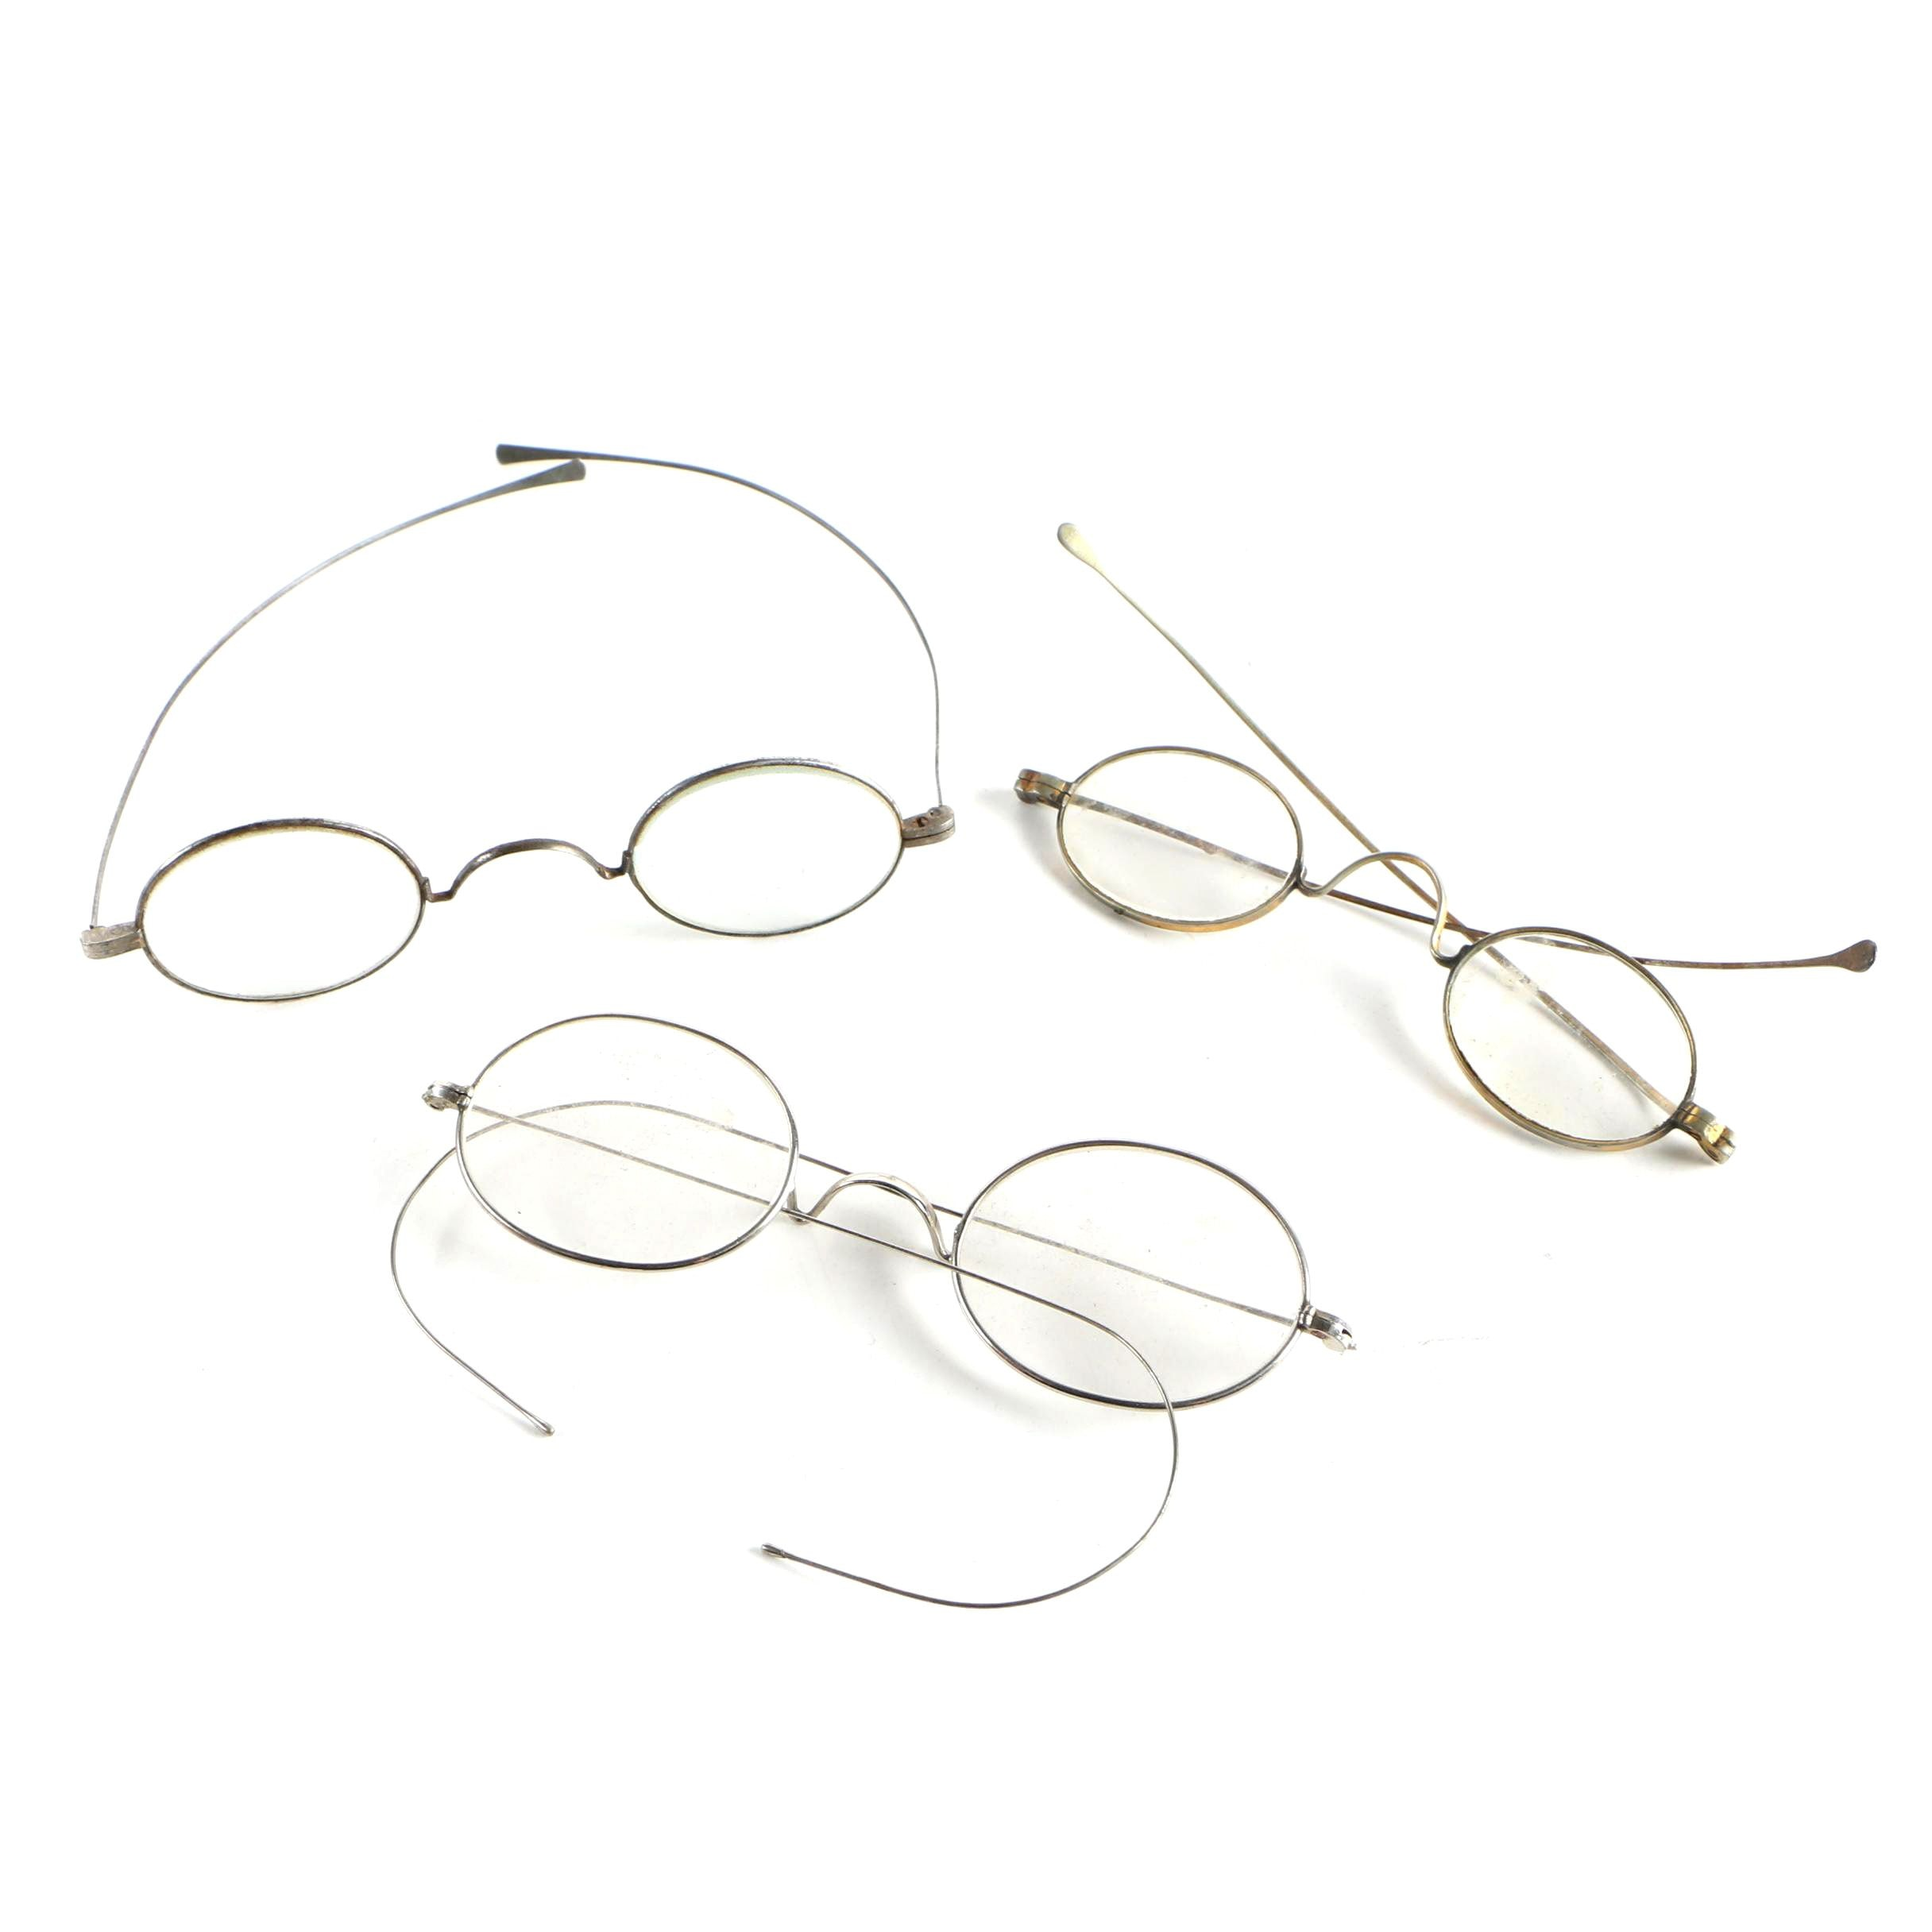 Vintage Wire-Rimmed Spectacles